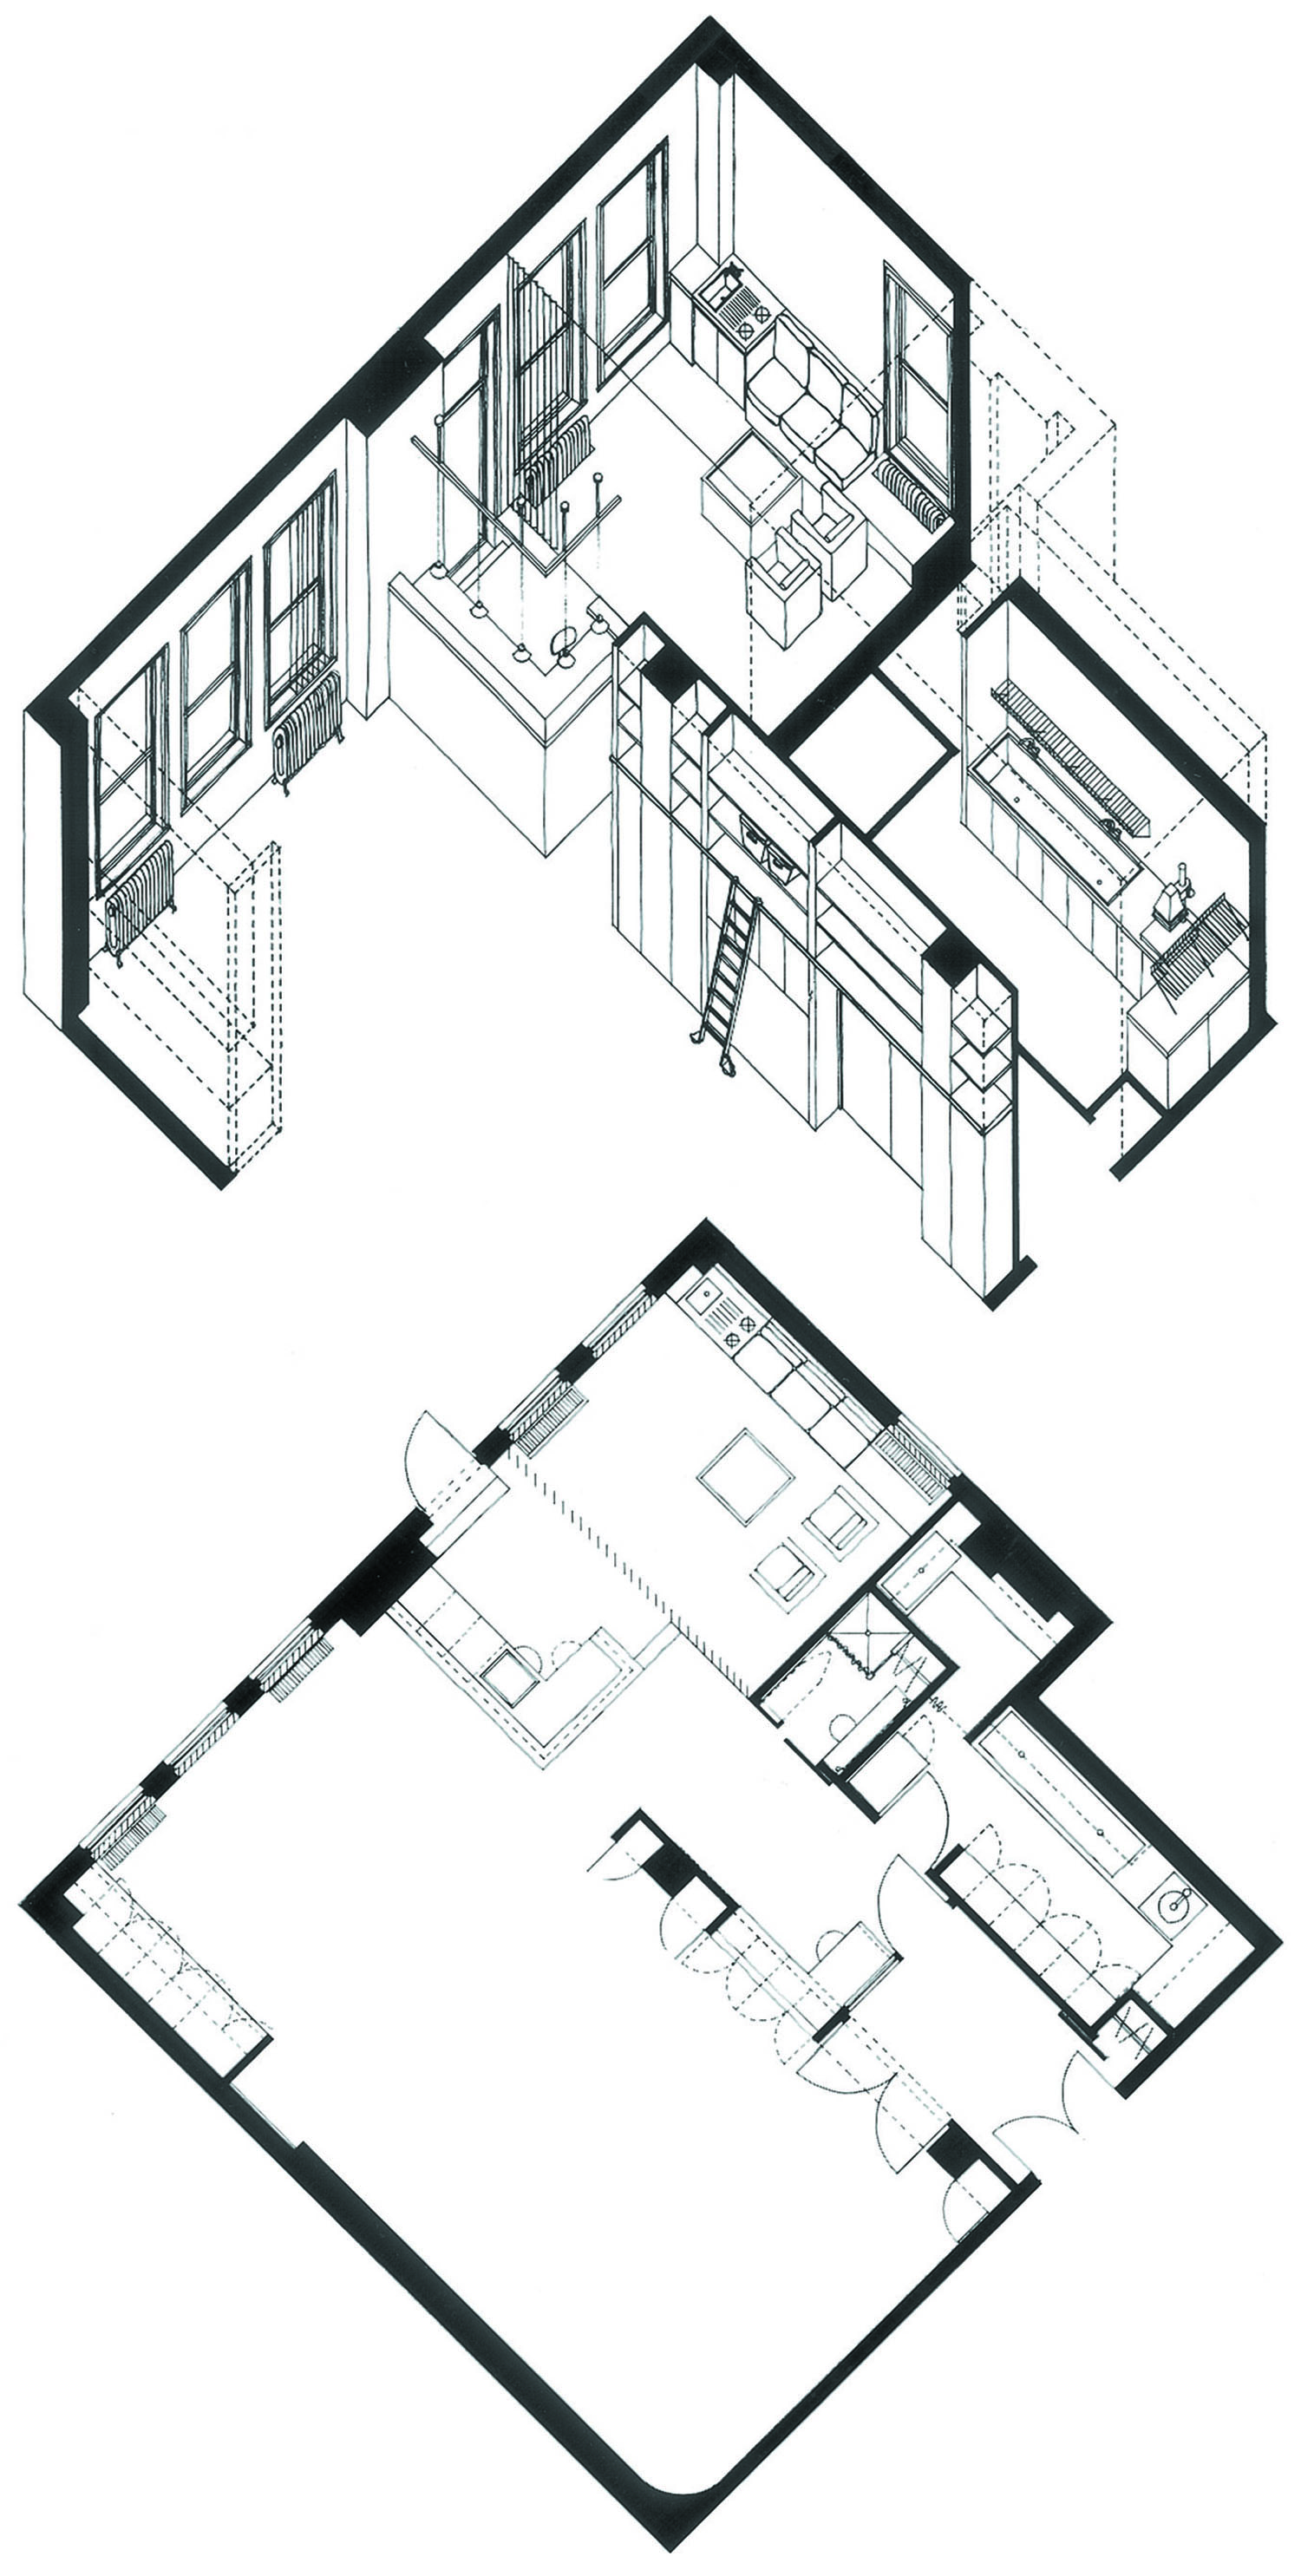 Gallucci Photography Studio Plan & Anoxometric Drawing